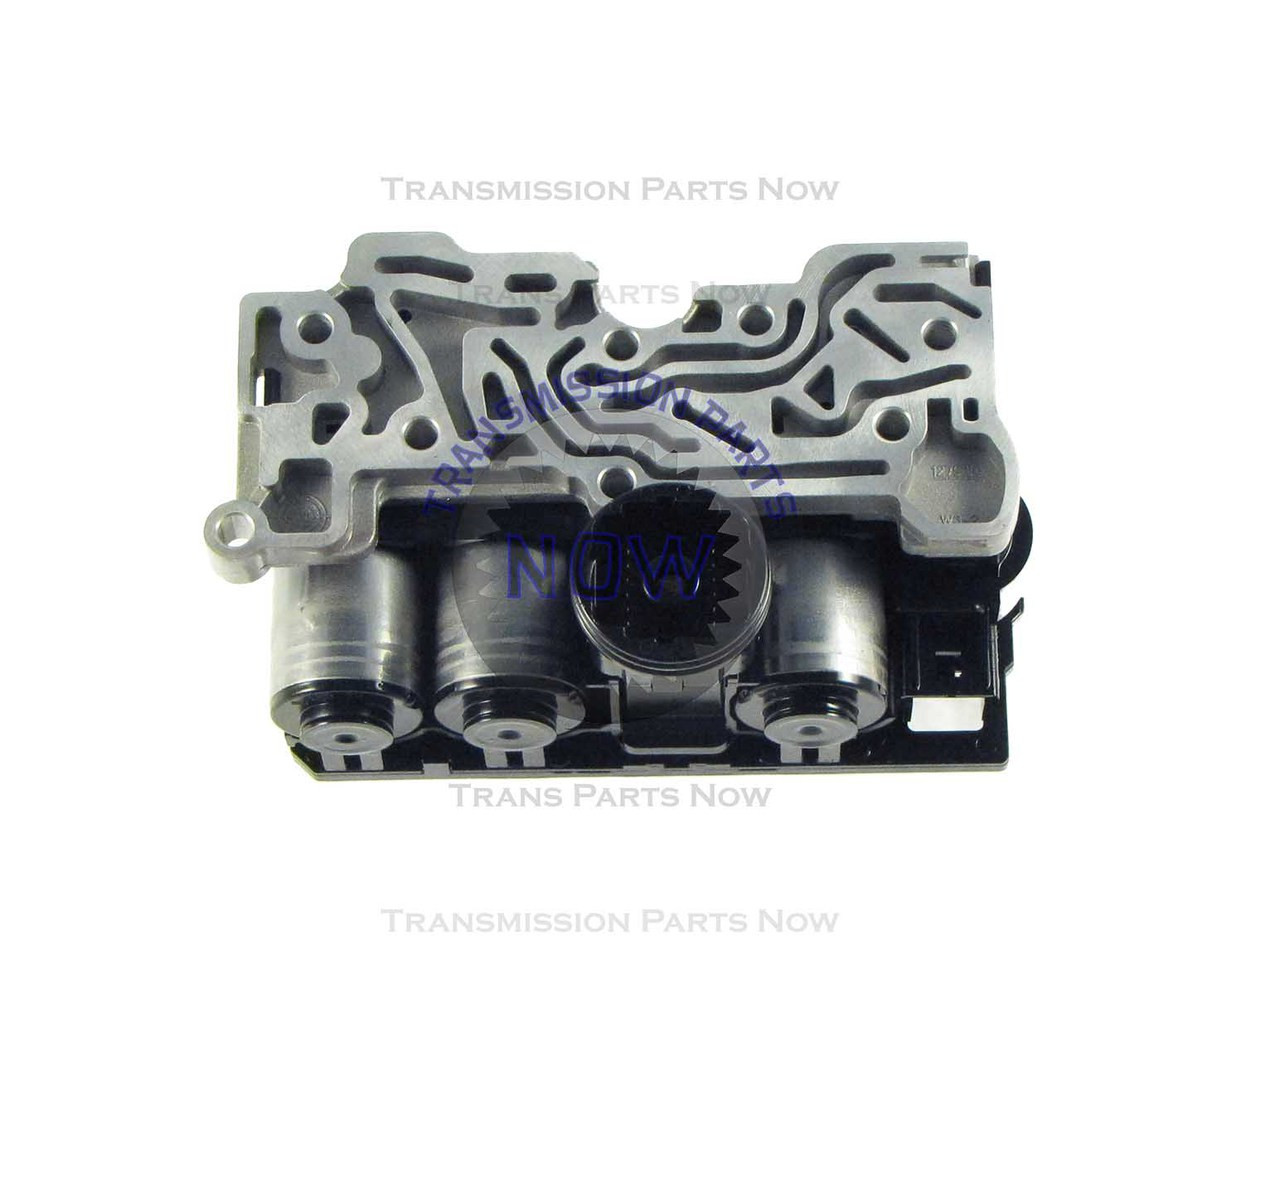 9L2Z-7G391-AA / Ford 5R55W / 5R55S solenoid pack block.  This fits all the below Transmission models  Aviator 4.6L , 2003 to 2006  Explorer 4.0L / 4.6L , 02 Up  Sport Trac 4.0L / 4.6L , 02 Up  Mountaineer 4.0L / 4.6L , 02 Up  Everest 3.0L , 2004 to 2010  Falcon FG 4.0L / 5.4L , 2008 to 2010  Mustang 4.0 / 4.6L , 2005 to 2010  Lincoln LS   3.0L / 3.9L , 2003 to 2006